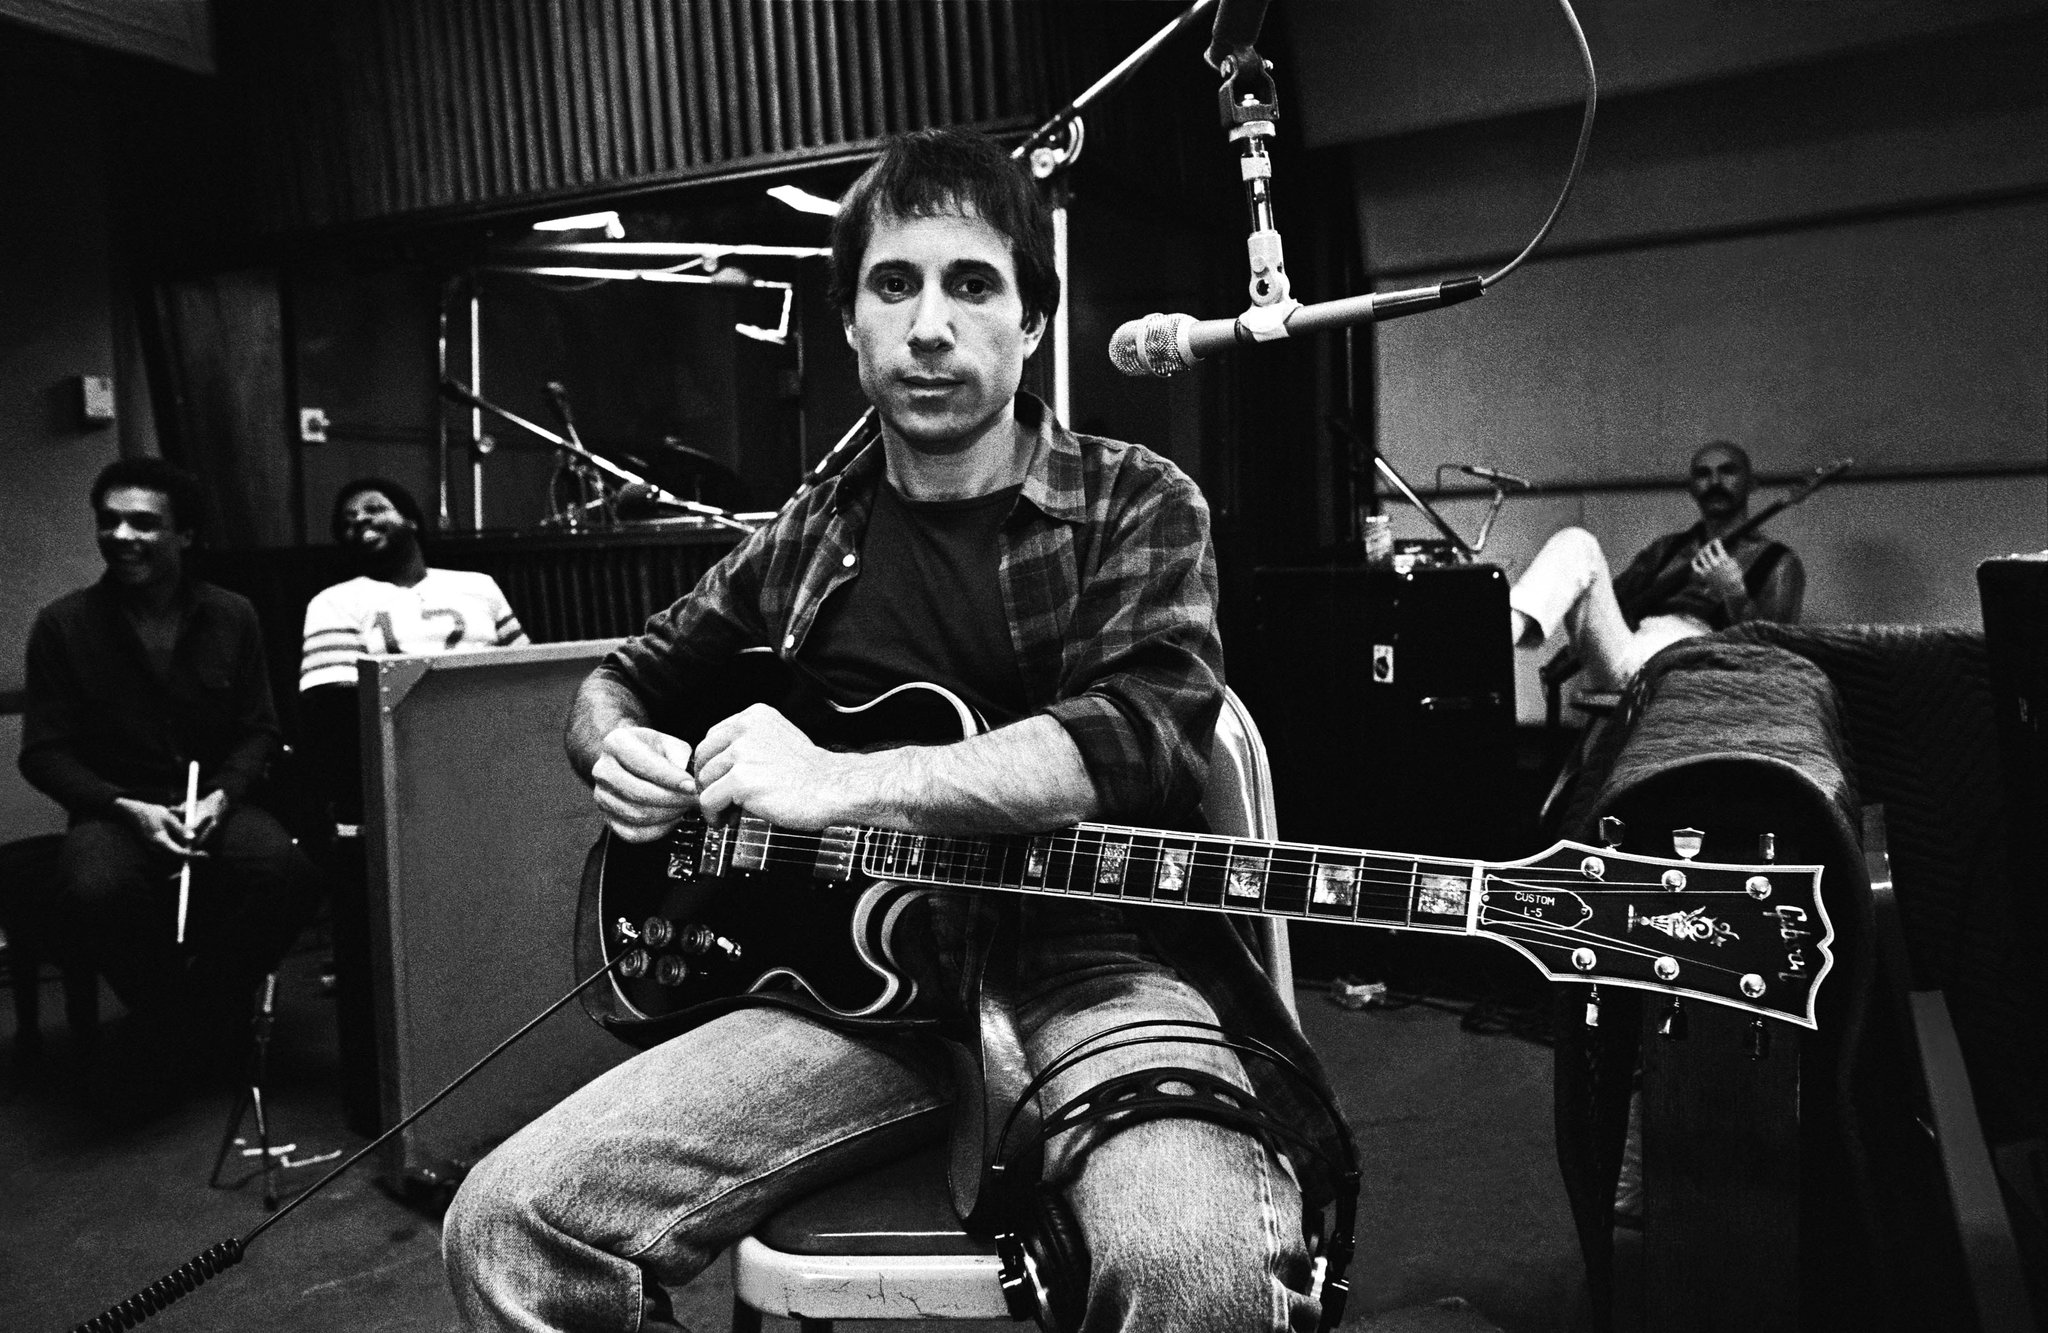 Happy 80th Birthday Paul Simon - one of the greatest songwriters and performers ever.